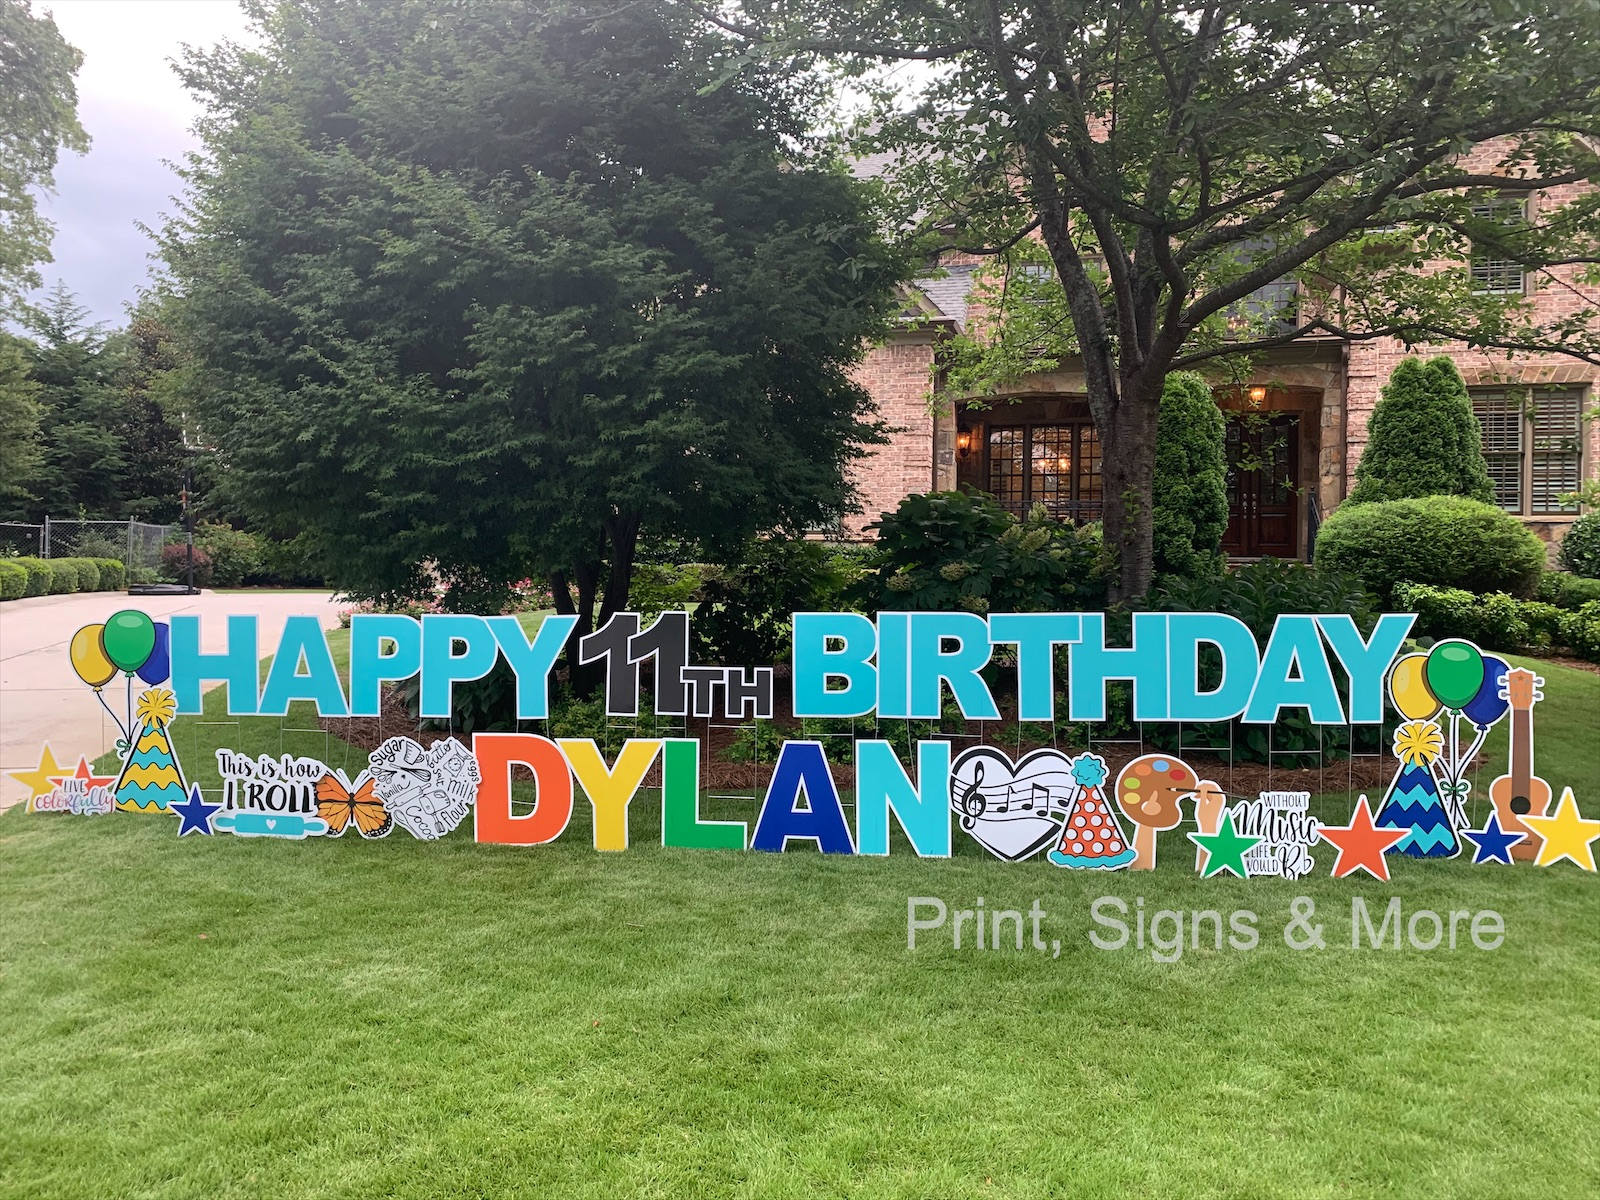 11th Birthday Yard sign greeting in turquoise